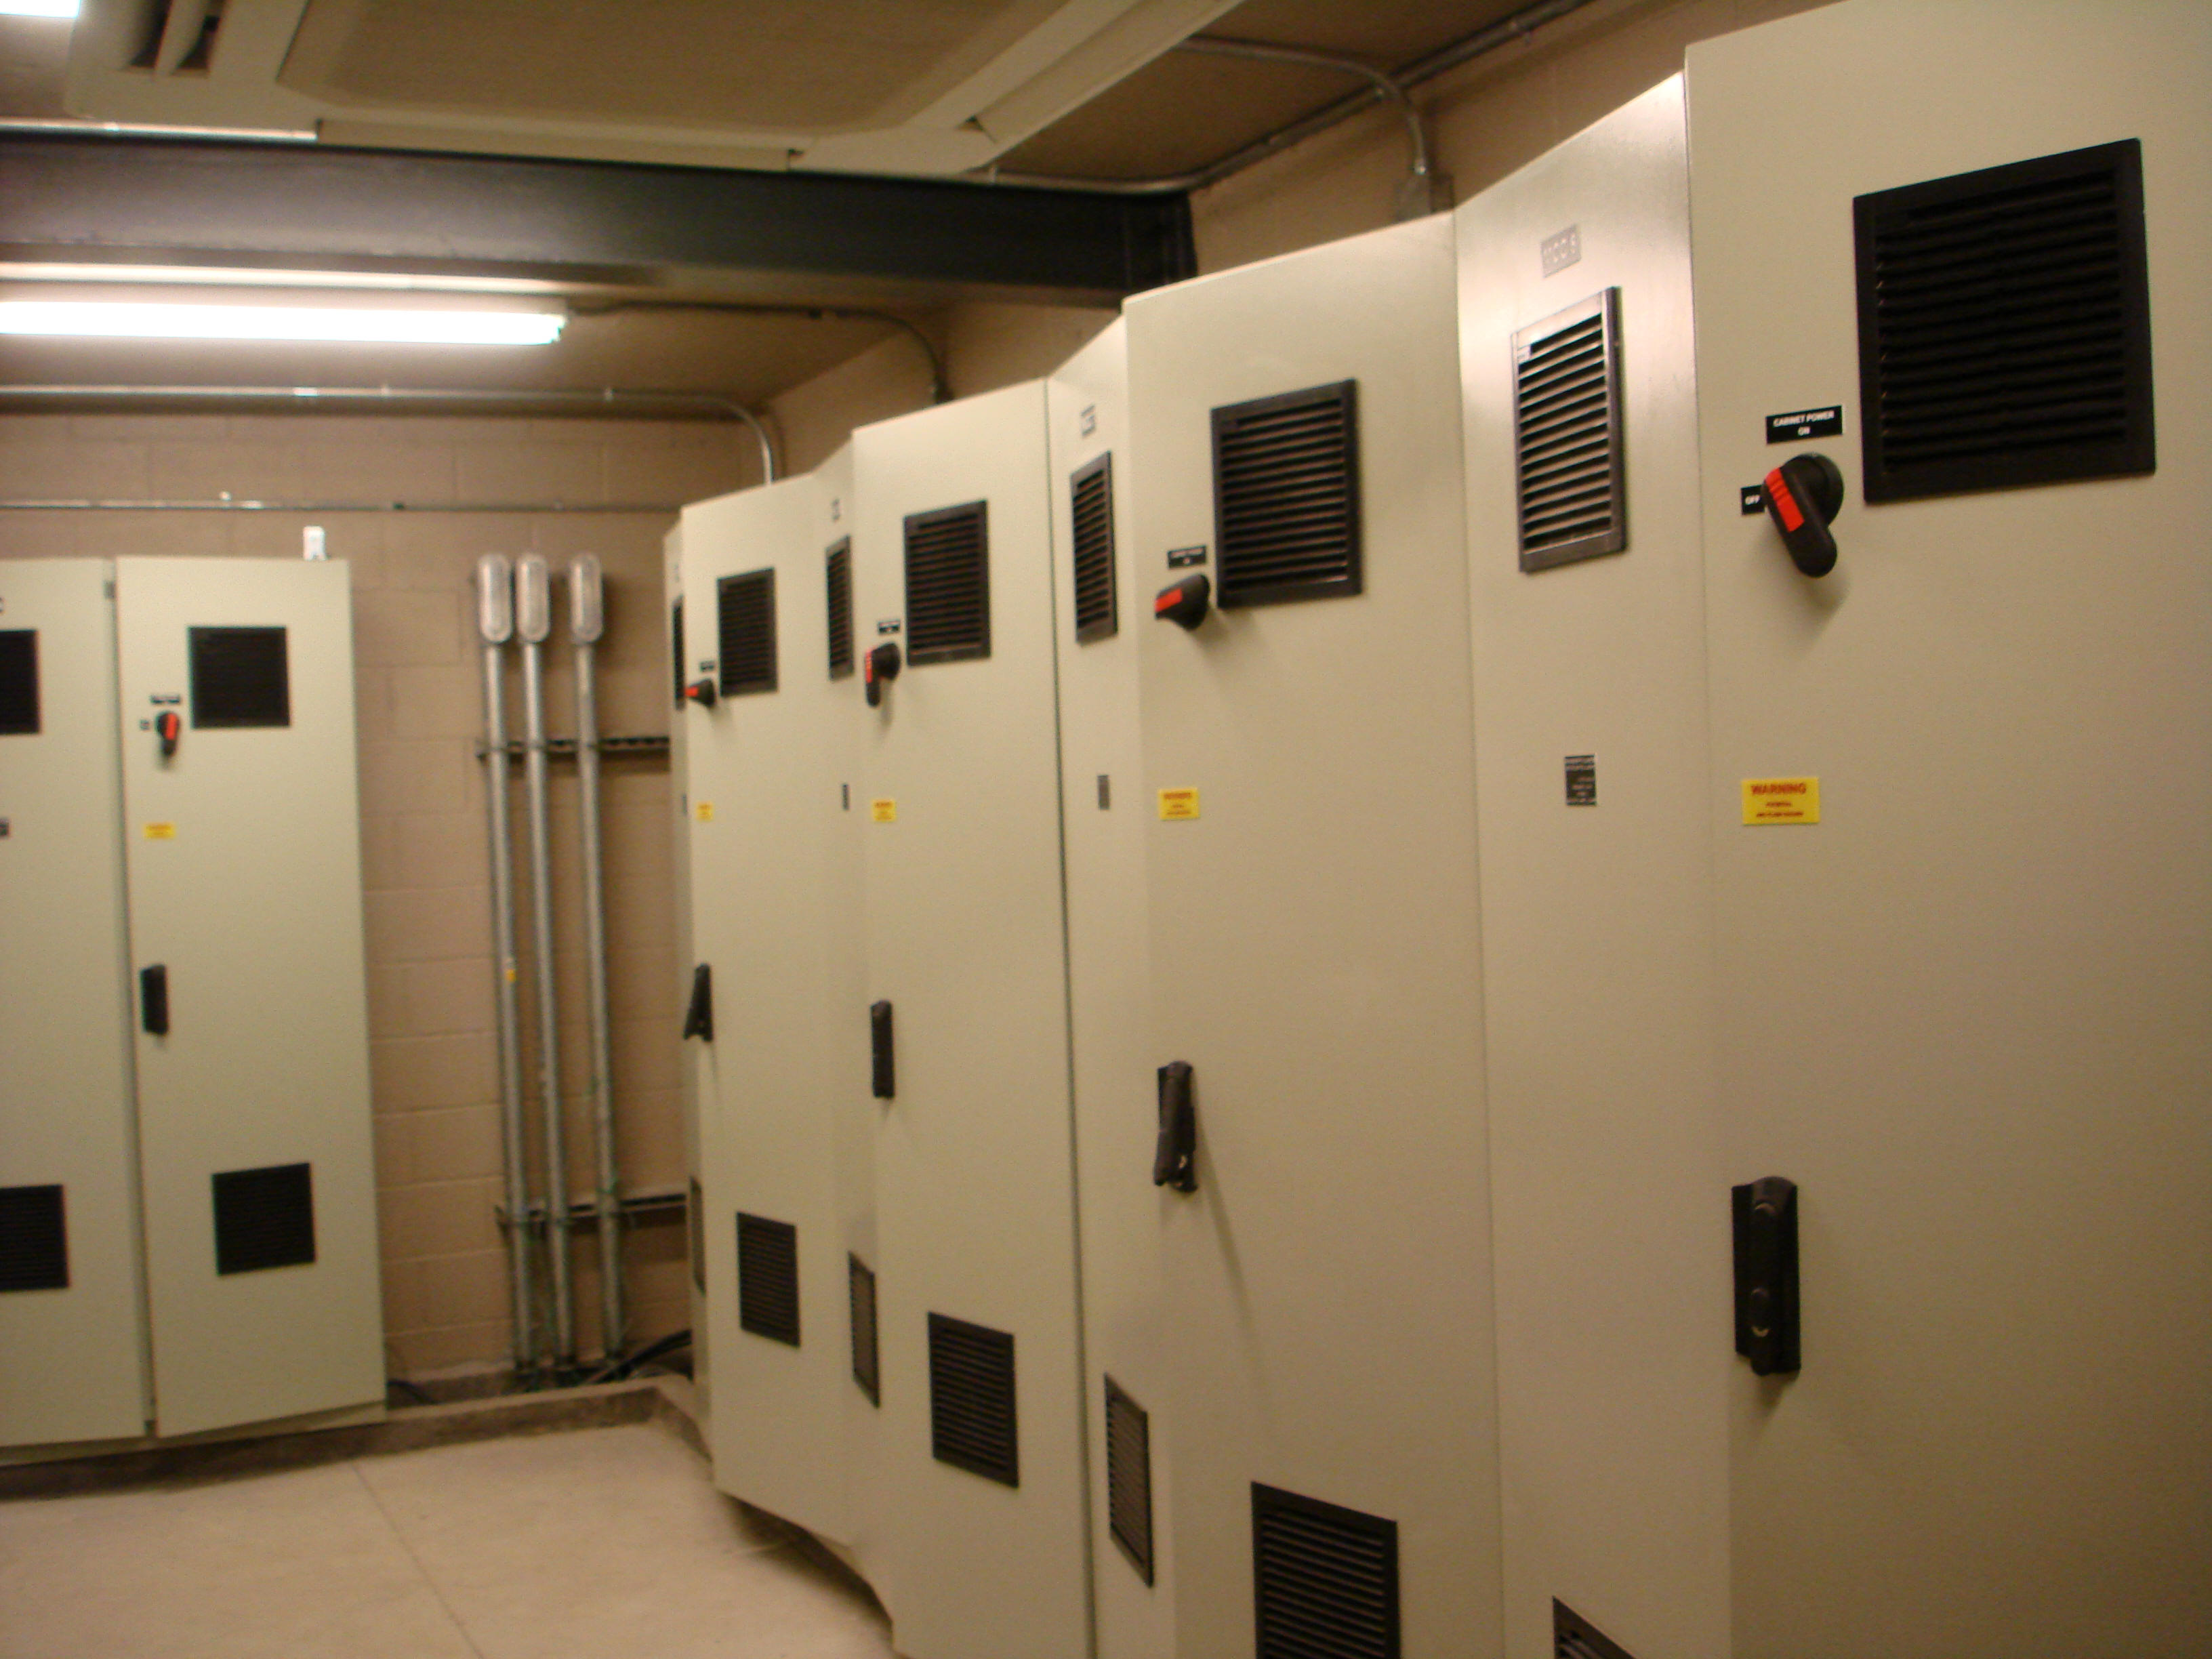 Maximum RPM Control Room with Motor Control Cabinets (8 total)